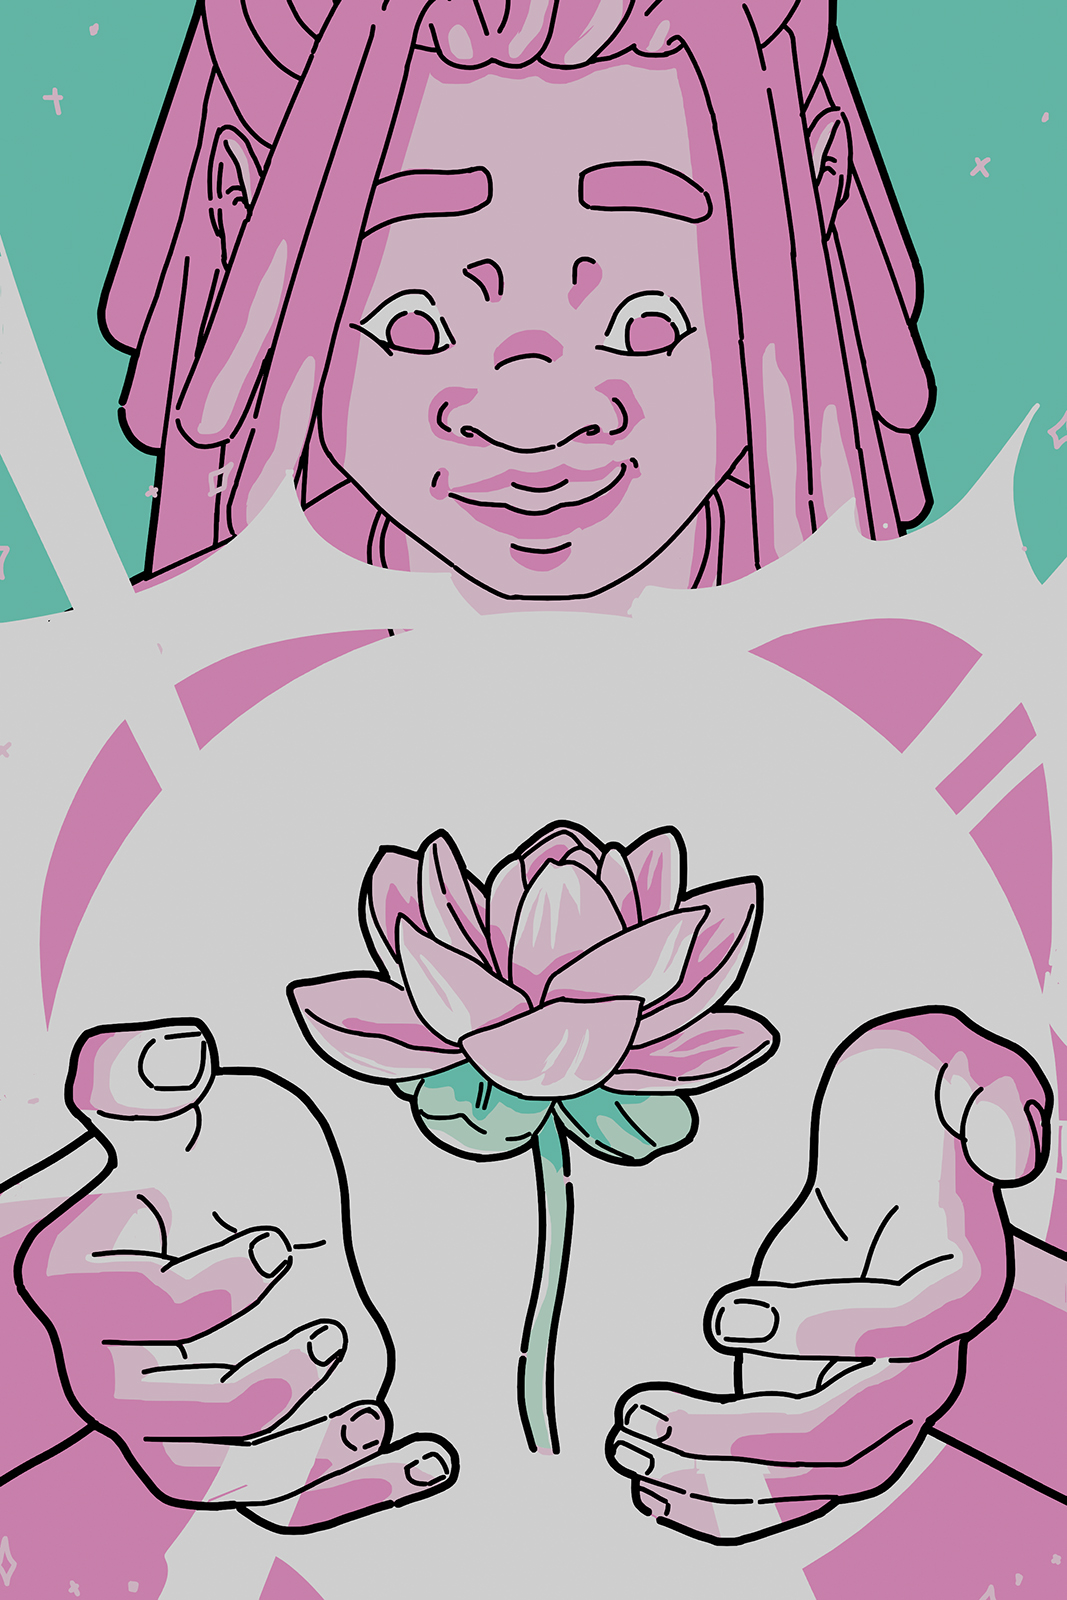 A still frame from an animation of a lotus opening in Kerris' hands. The flower floats in a globe of light cupped by Kerris' hands. They have a soft smile on their face.